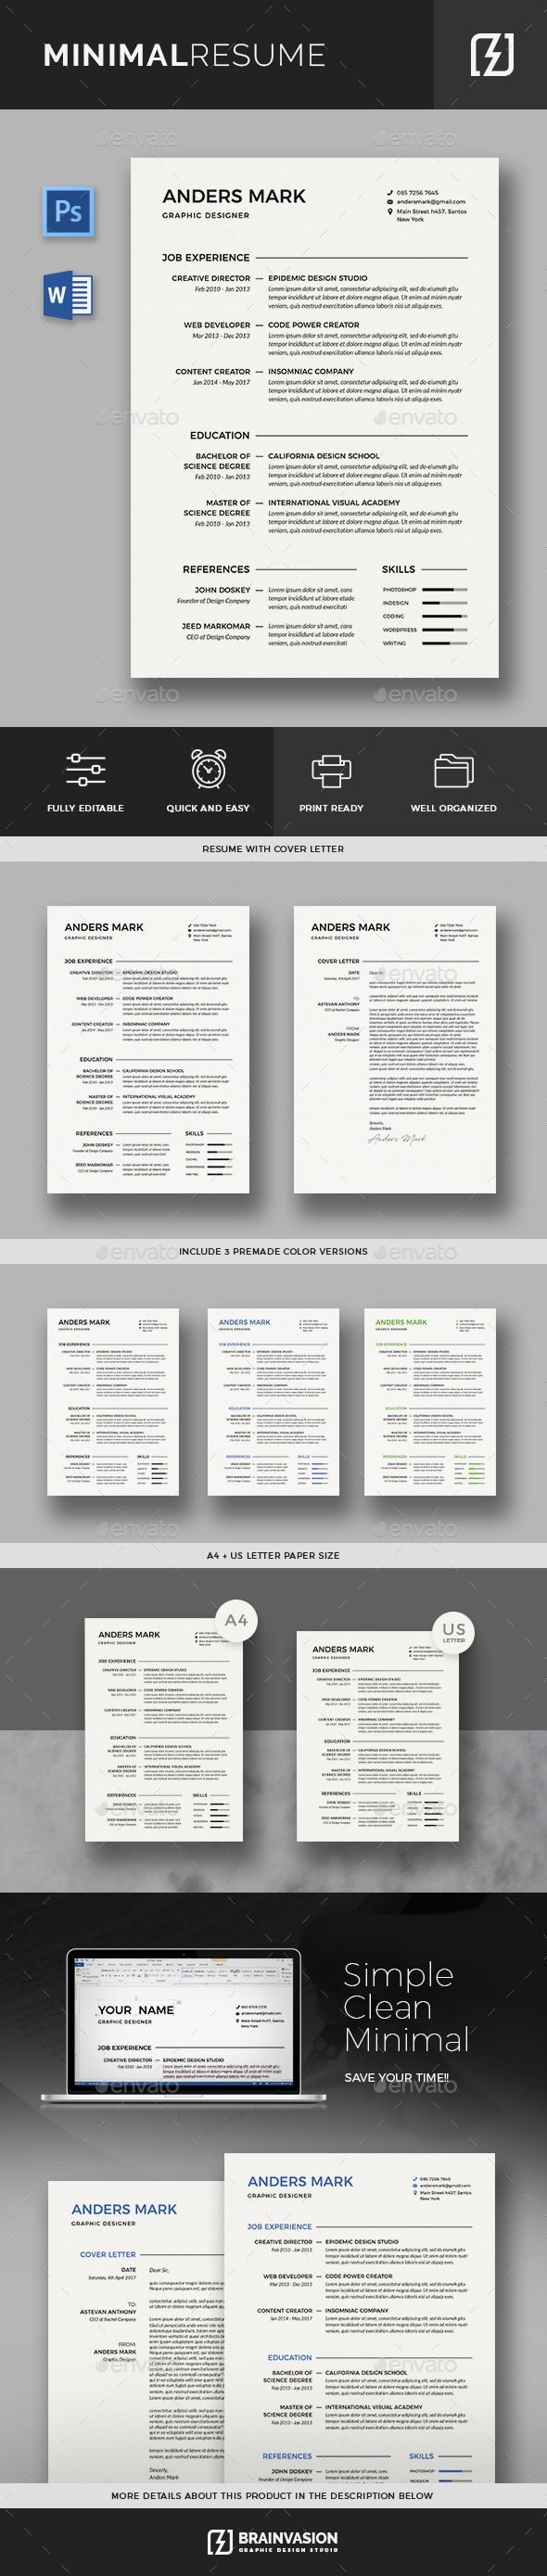 Resume Text Size Minimal Resume Template  Ddd  Pinterest  Template Cv Template .